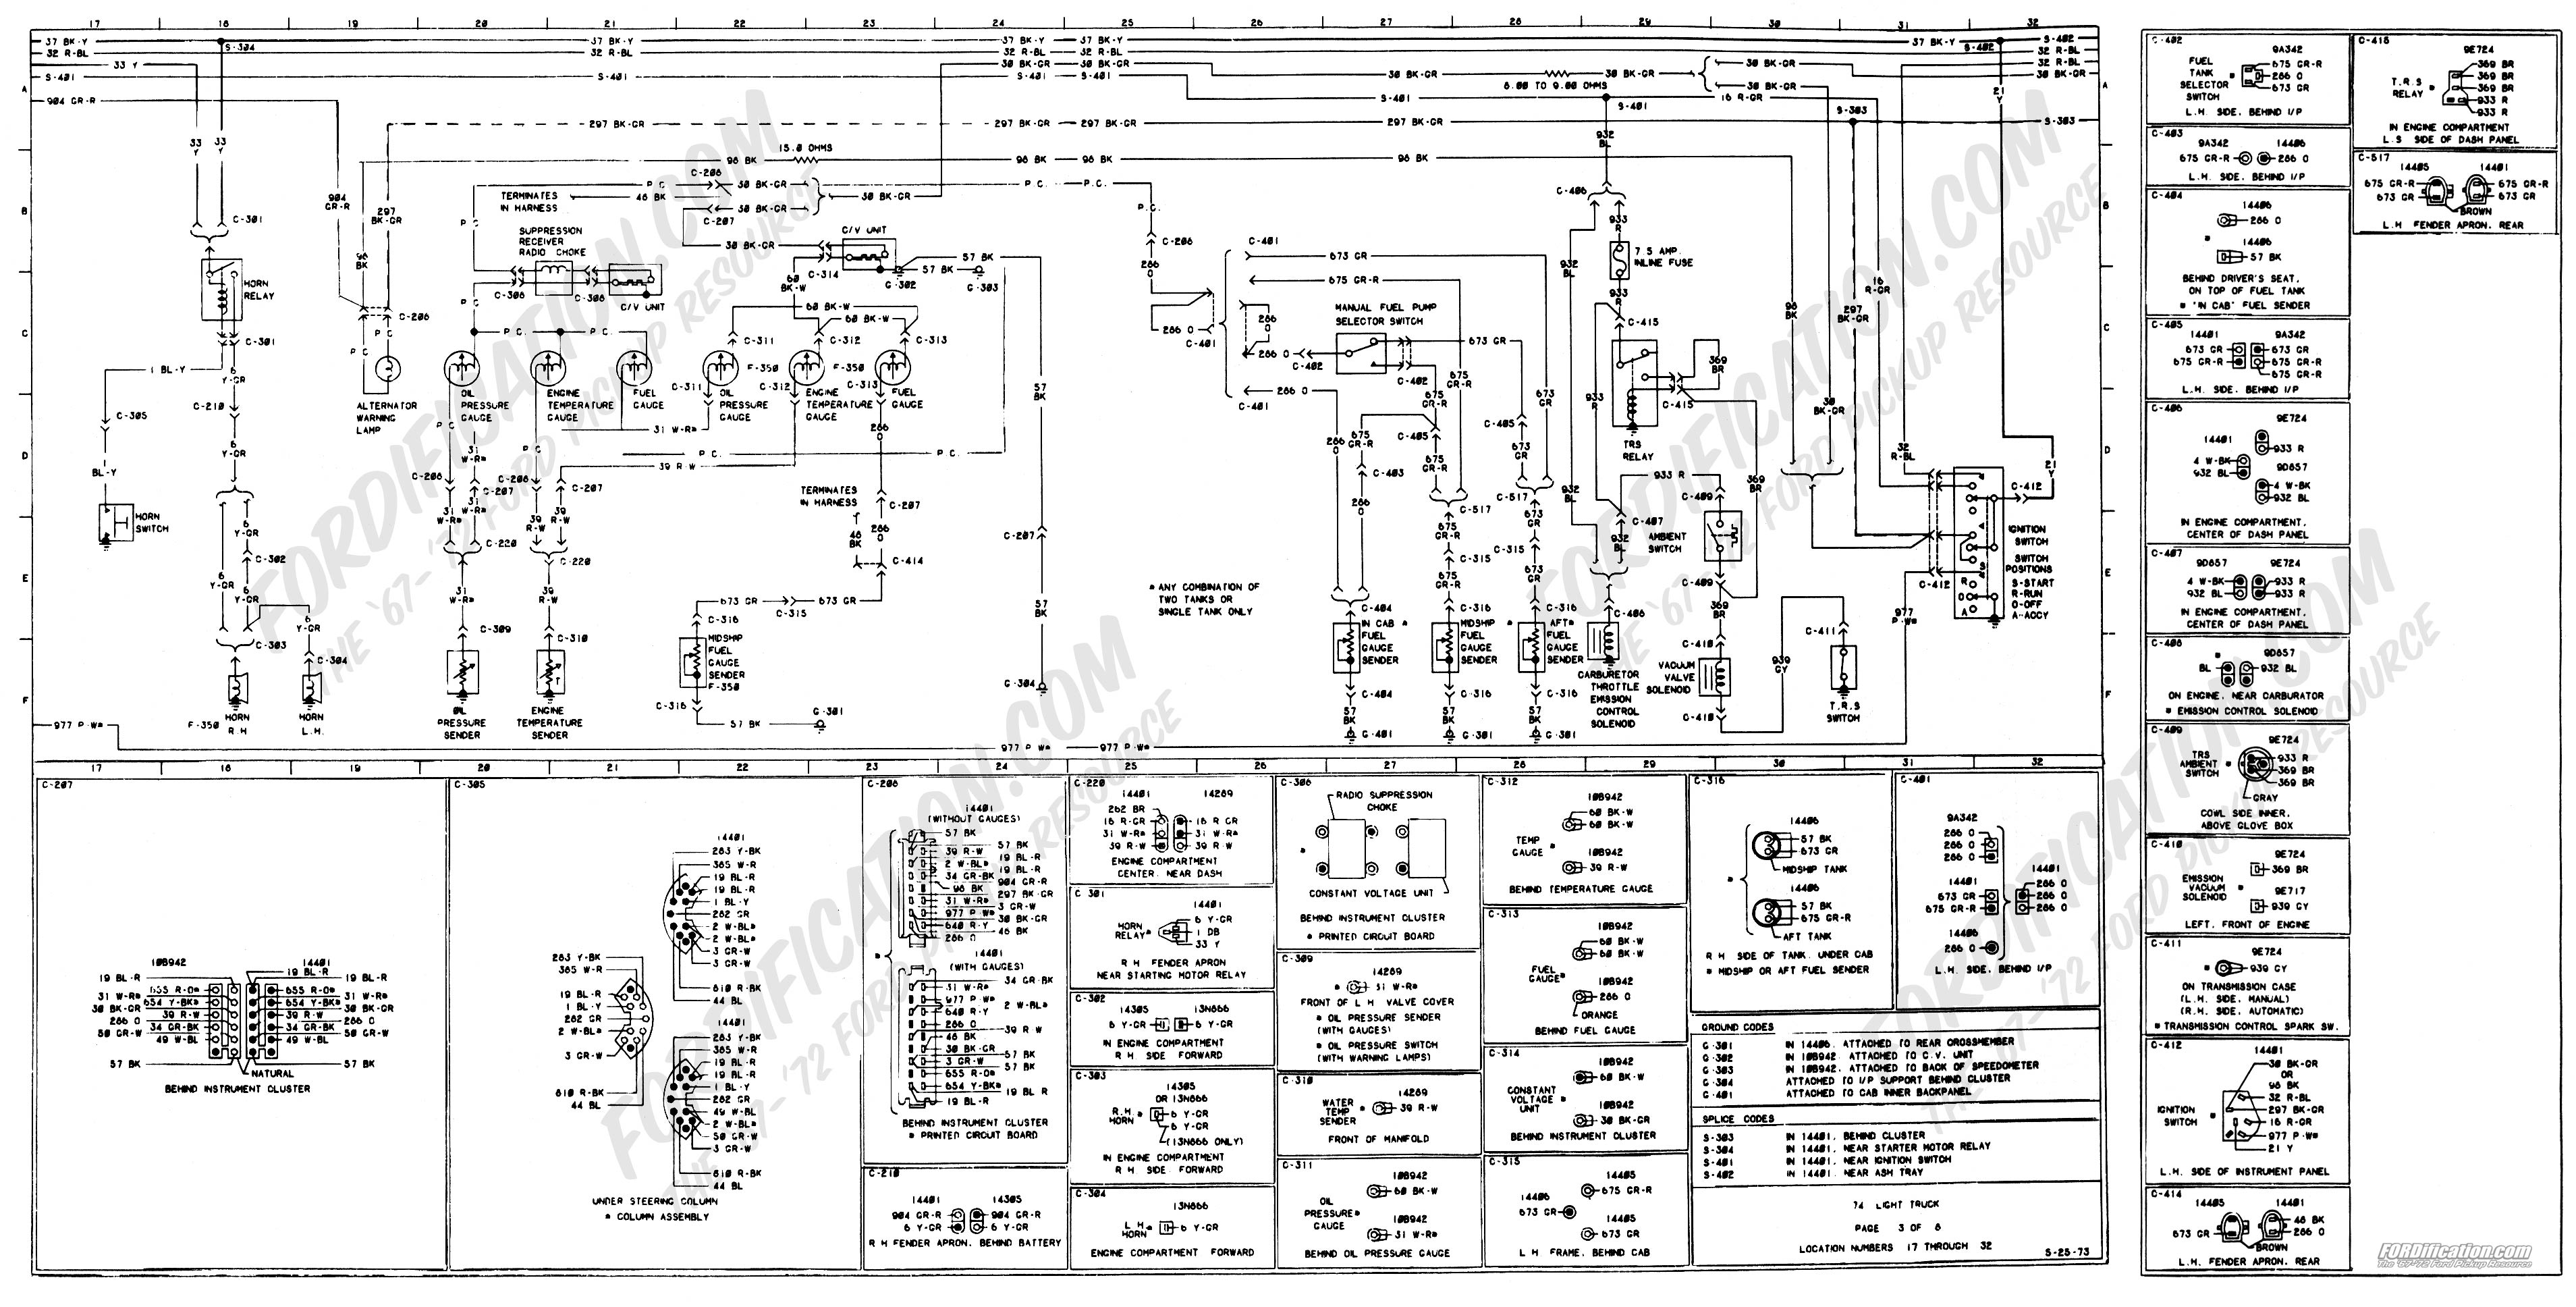 wiring_74master_3of8 1973 1979 ford truck wiring diagrams & schematics fordification net ford ignition wiring diagram at aneh.co